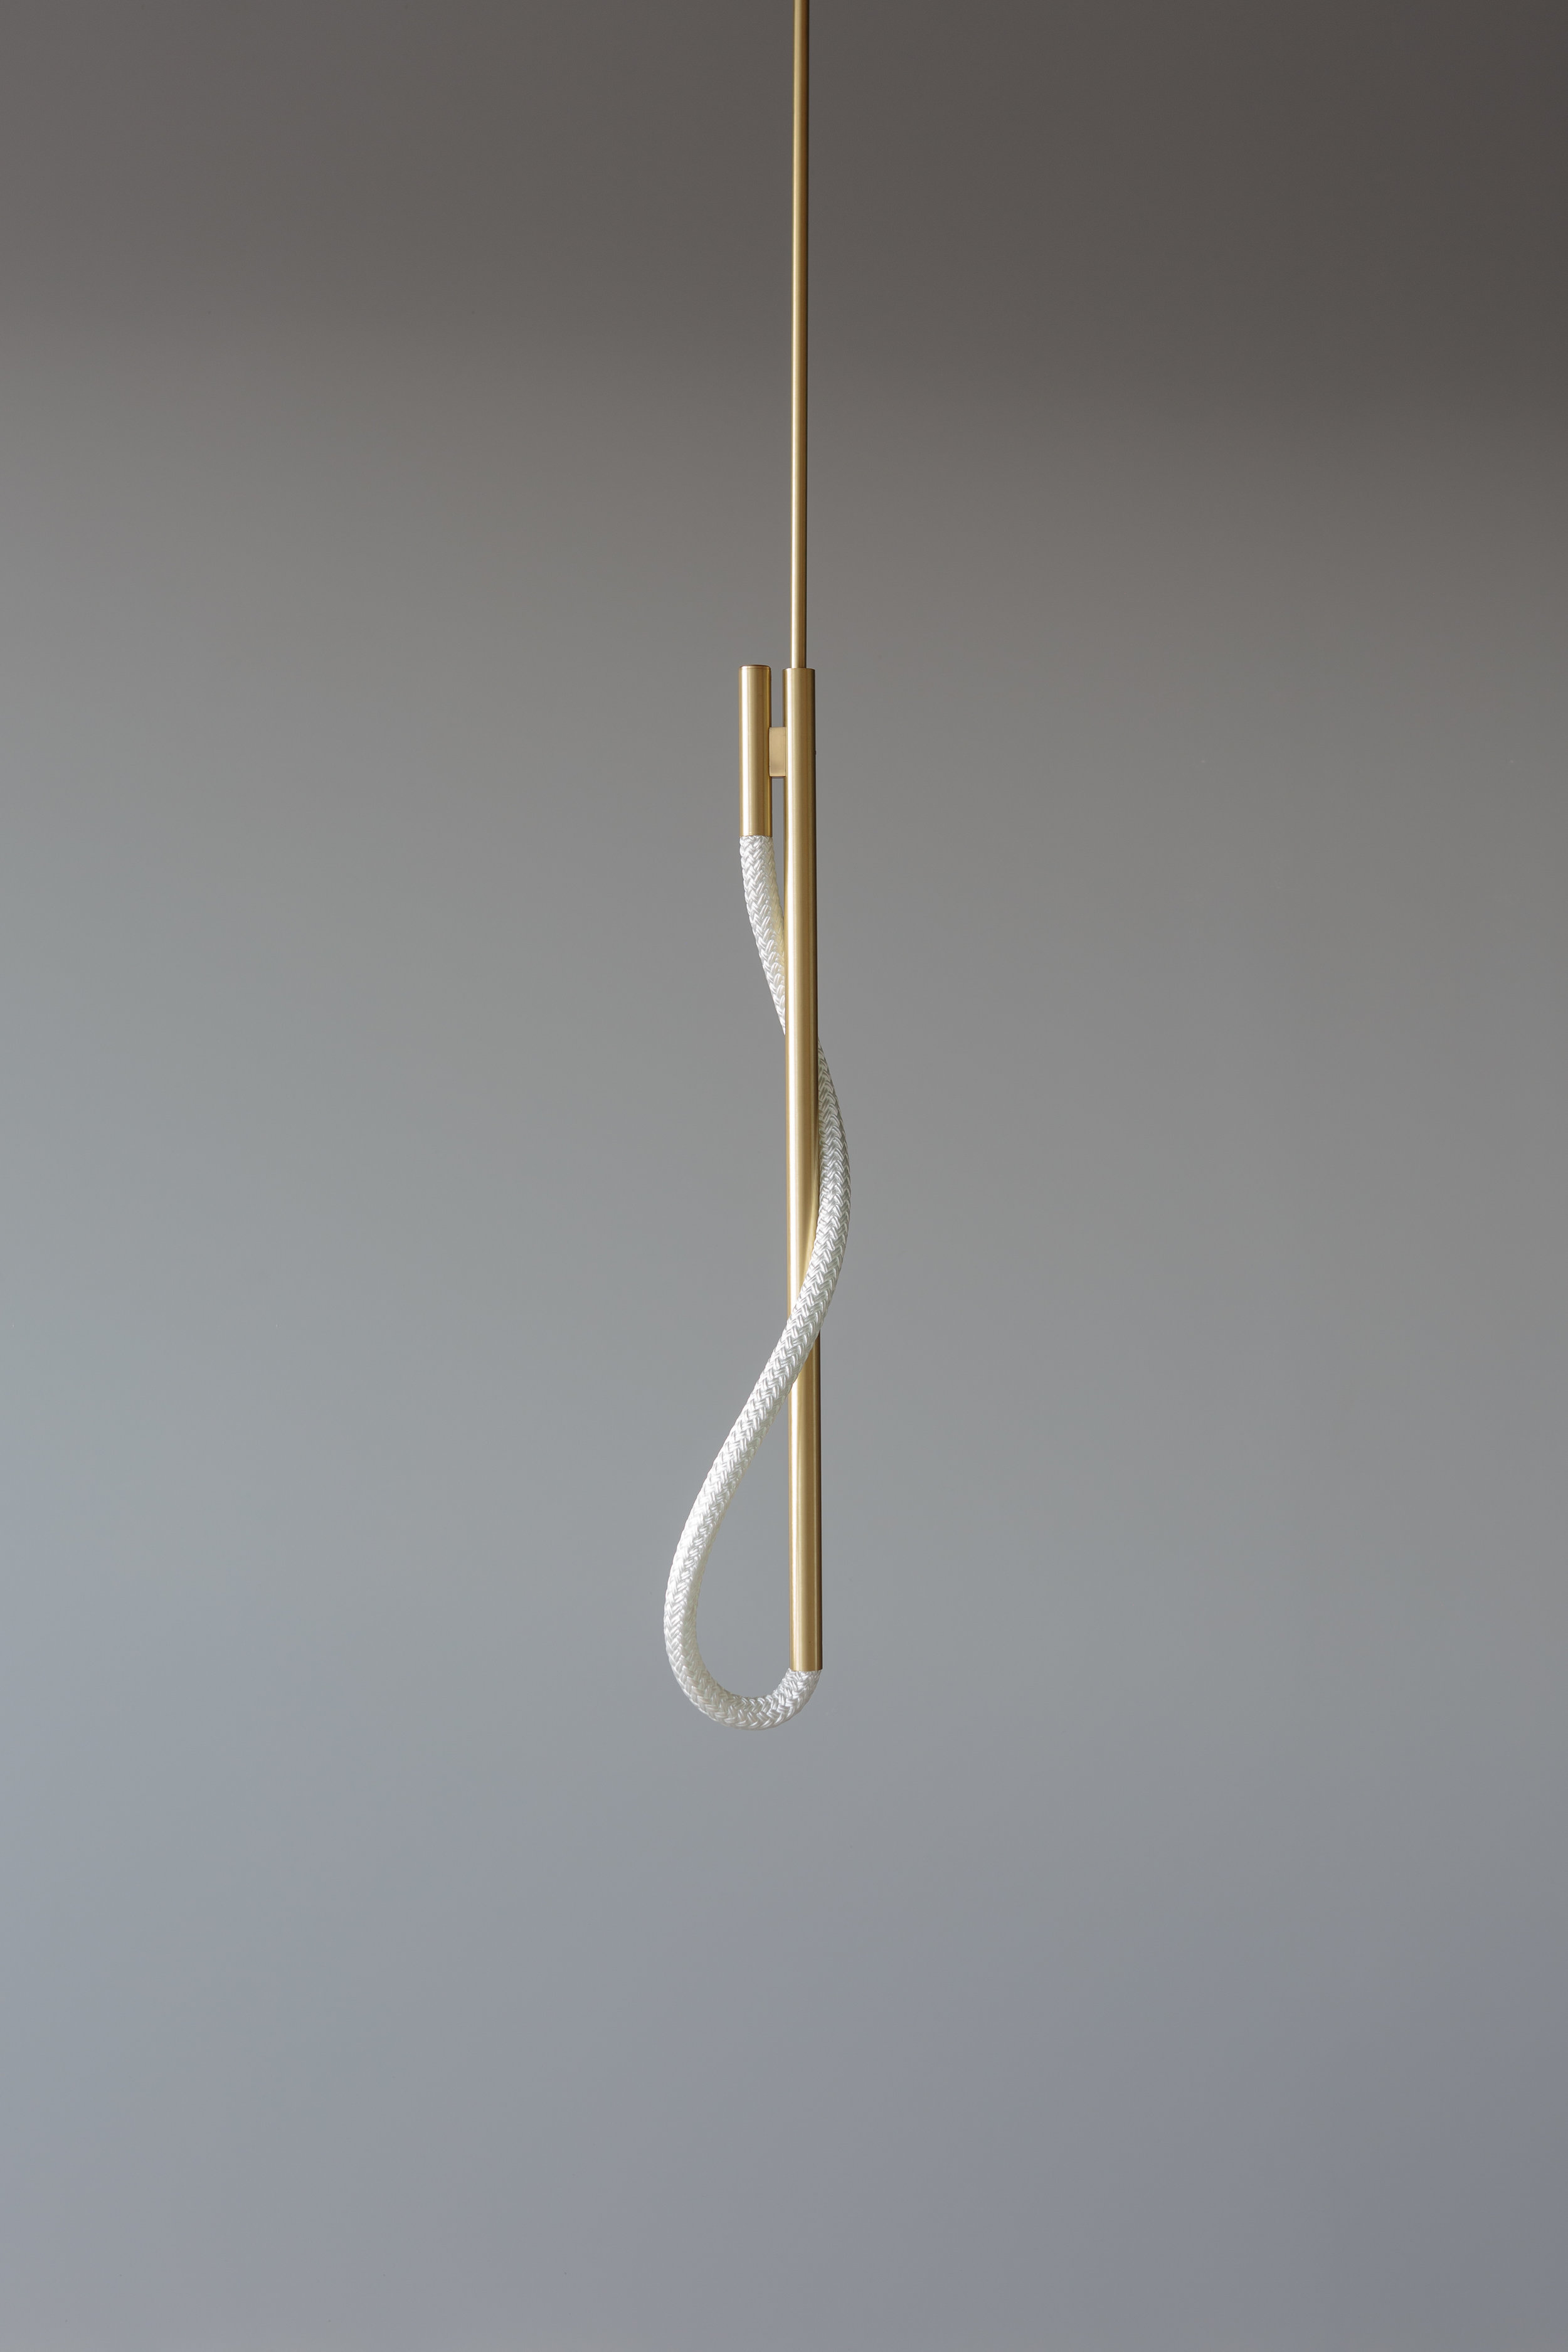 2.5' Surrey Pendant (pictured in Satin Brass / turned off)